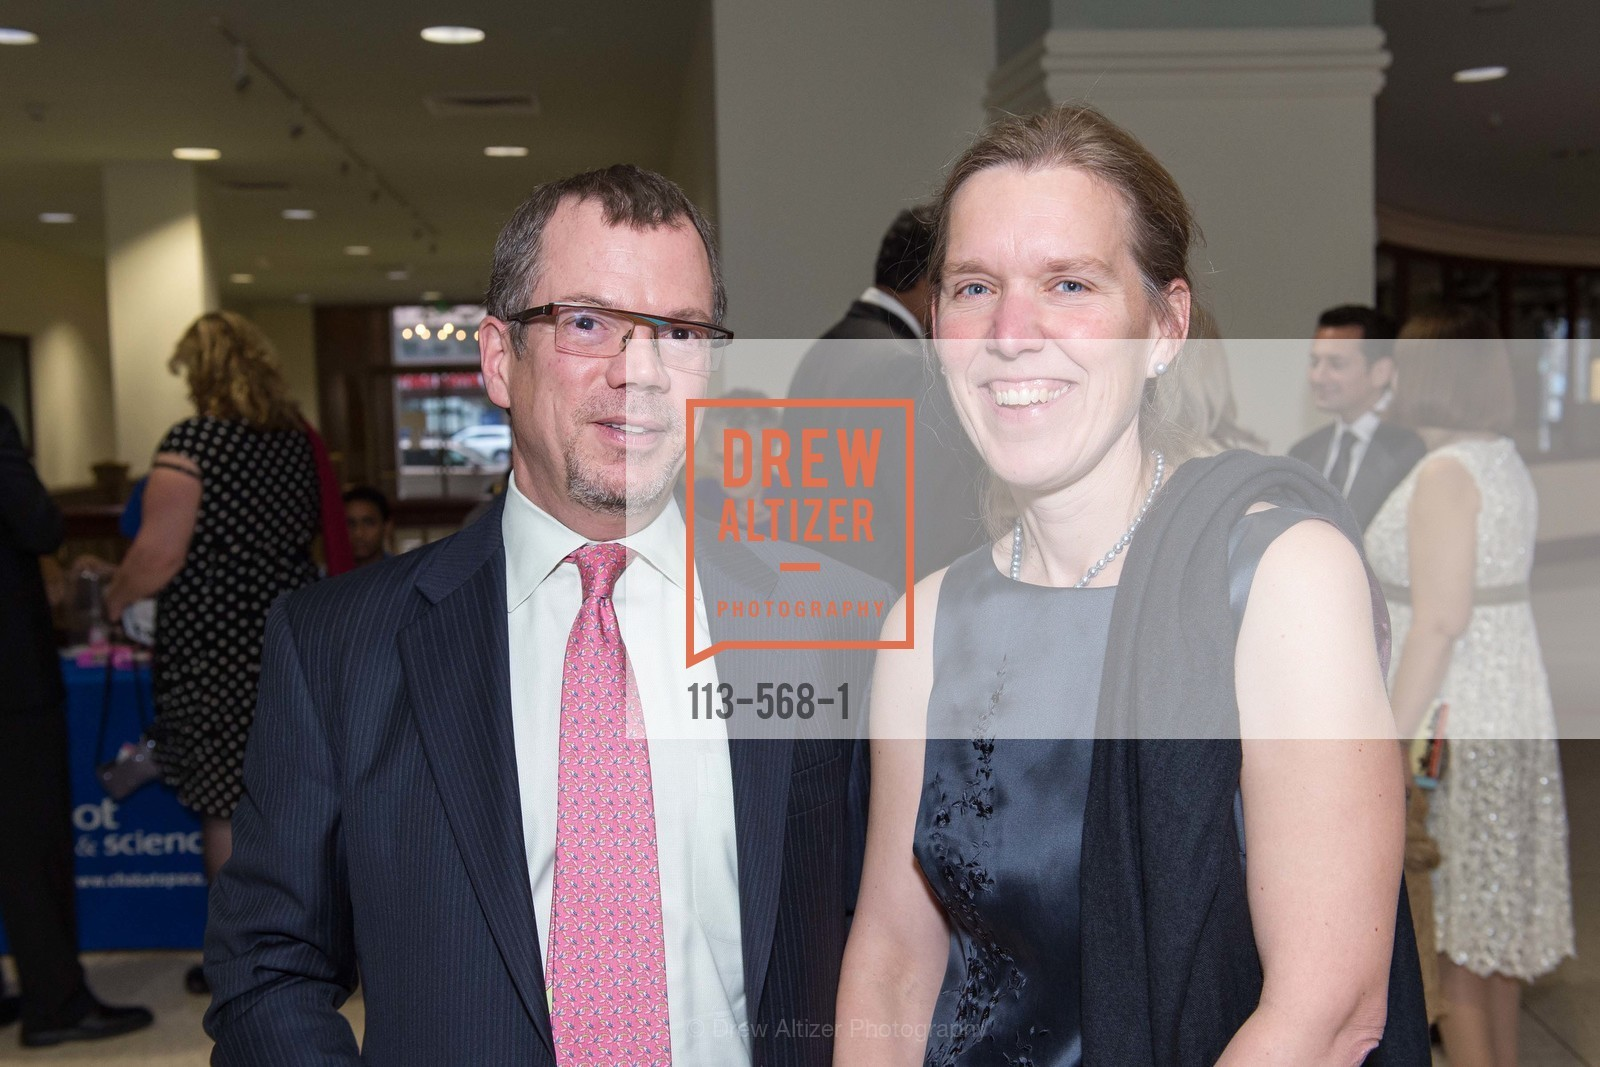 Ethan Ravage, Julia Dawson, SOTHEBY'S  Hosts a Private Viewing of Highlights from the Collection of MRS. PAUL MELLON, US, September 17th, 2014,Drew Altizer, Drew Altizer Photography, full-service agency, private events, San Francisco photographer, photographer california